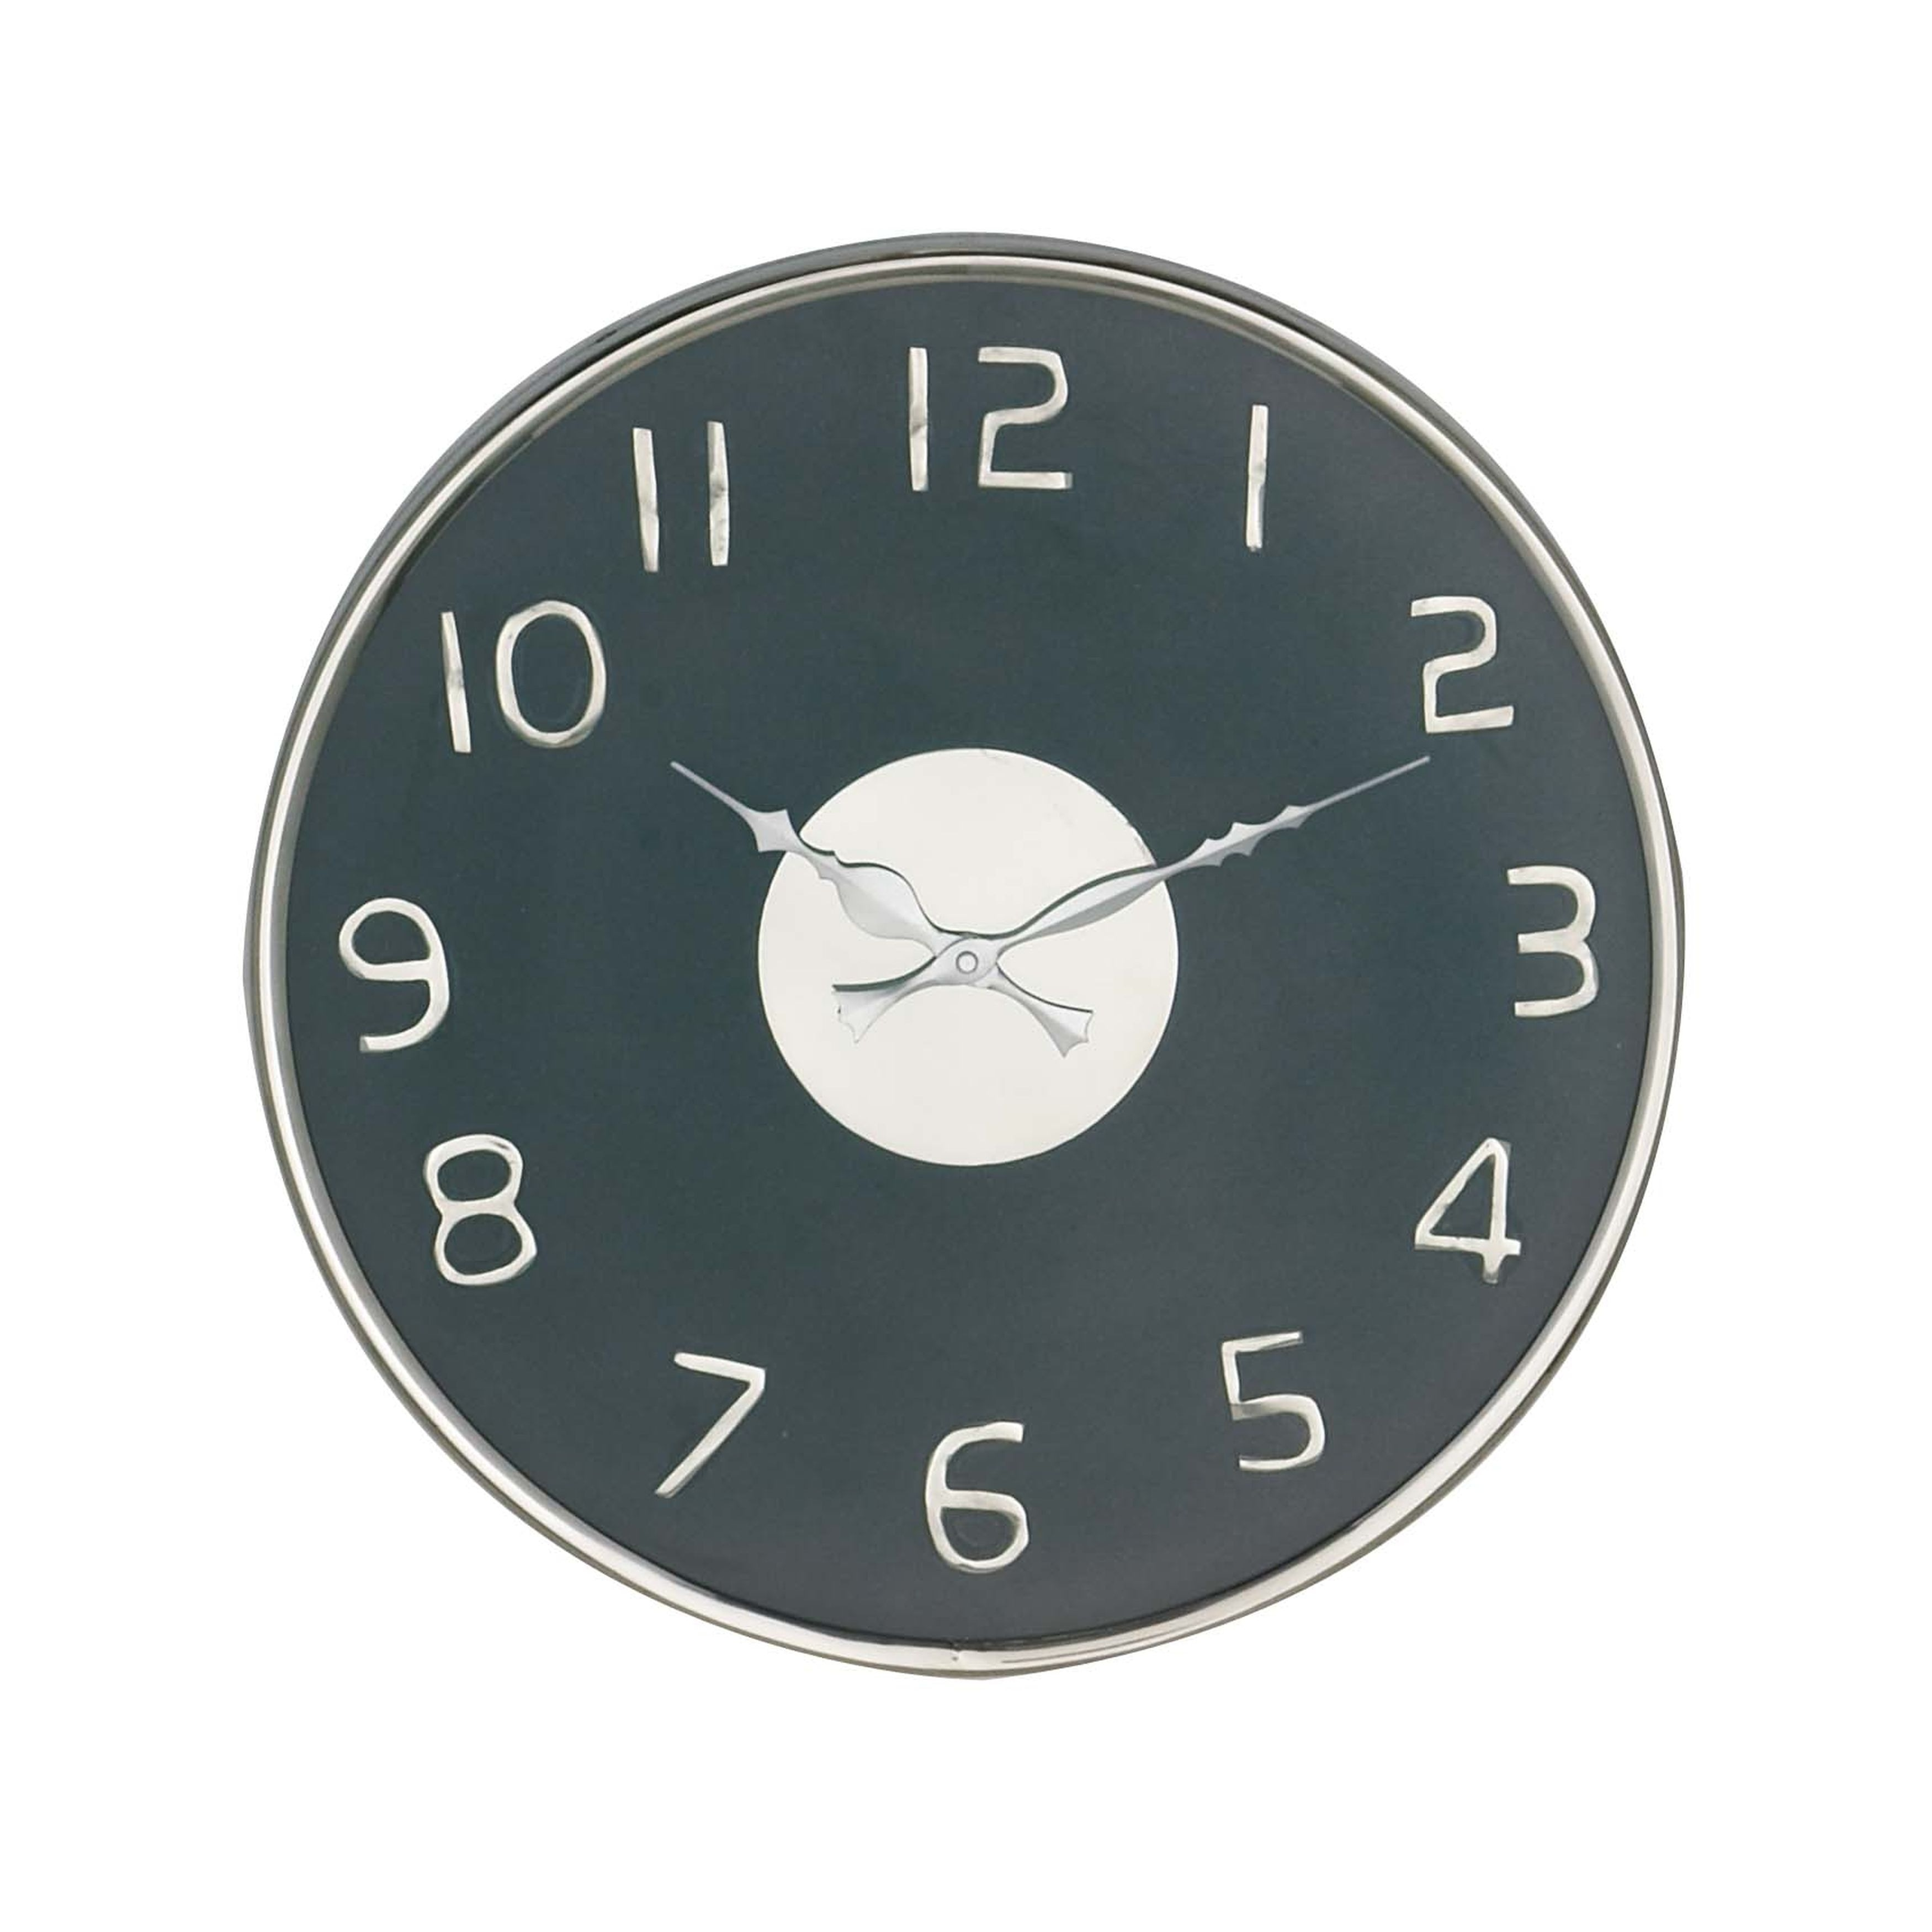 14 Inch Modern Round Black Stainless Steel Wall Clock Free Shipping Today 25551445